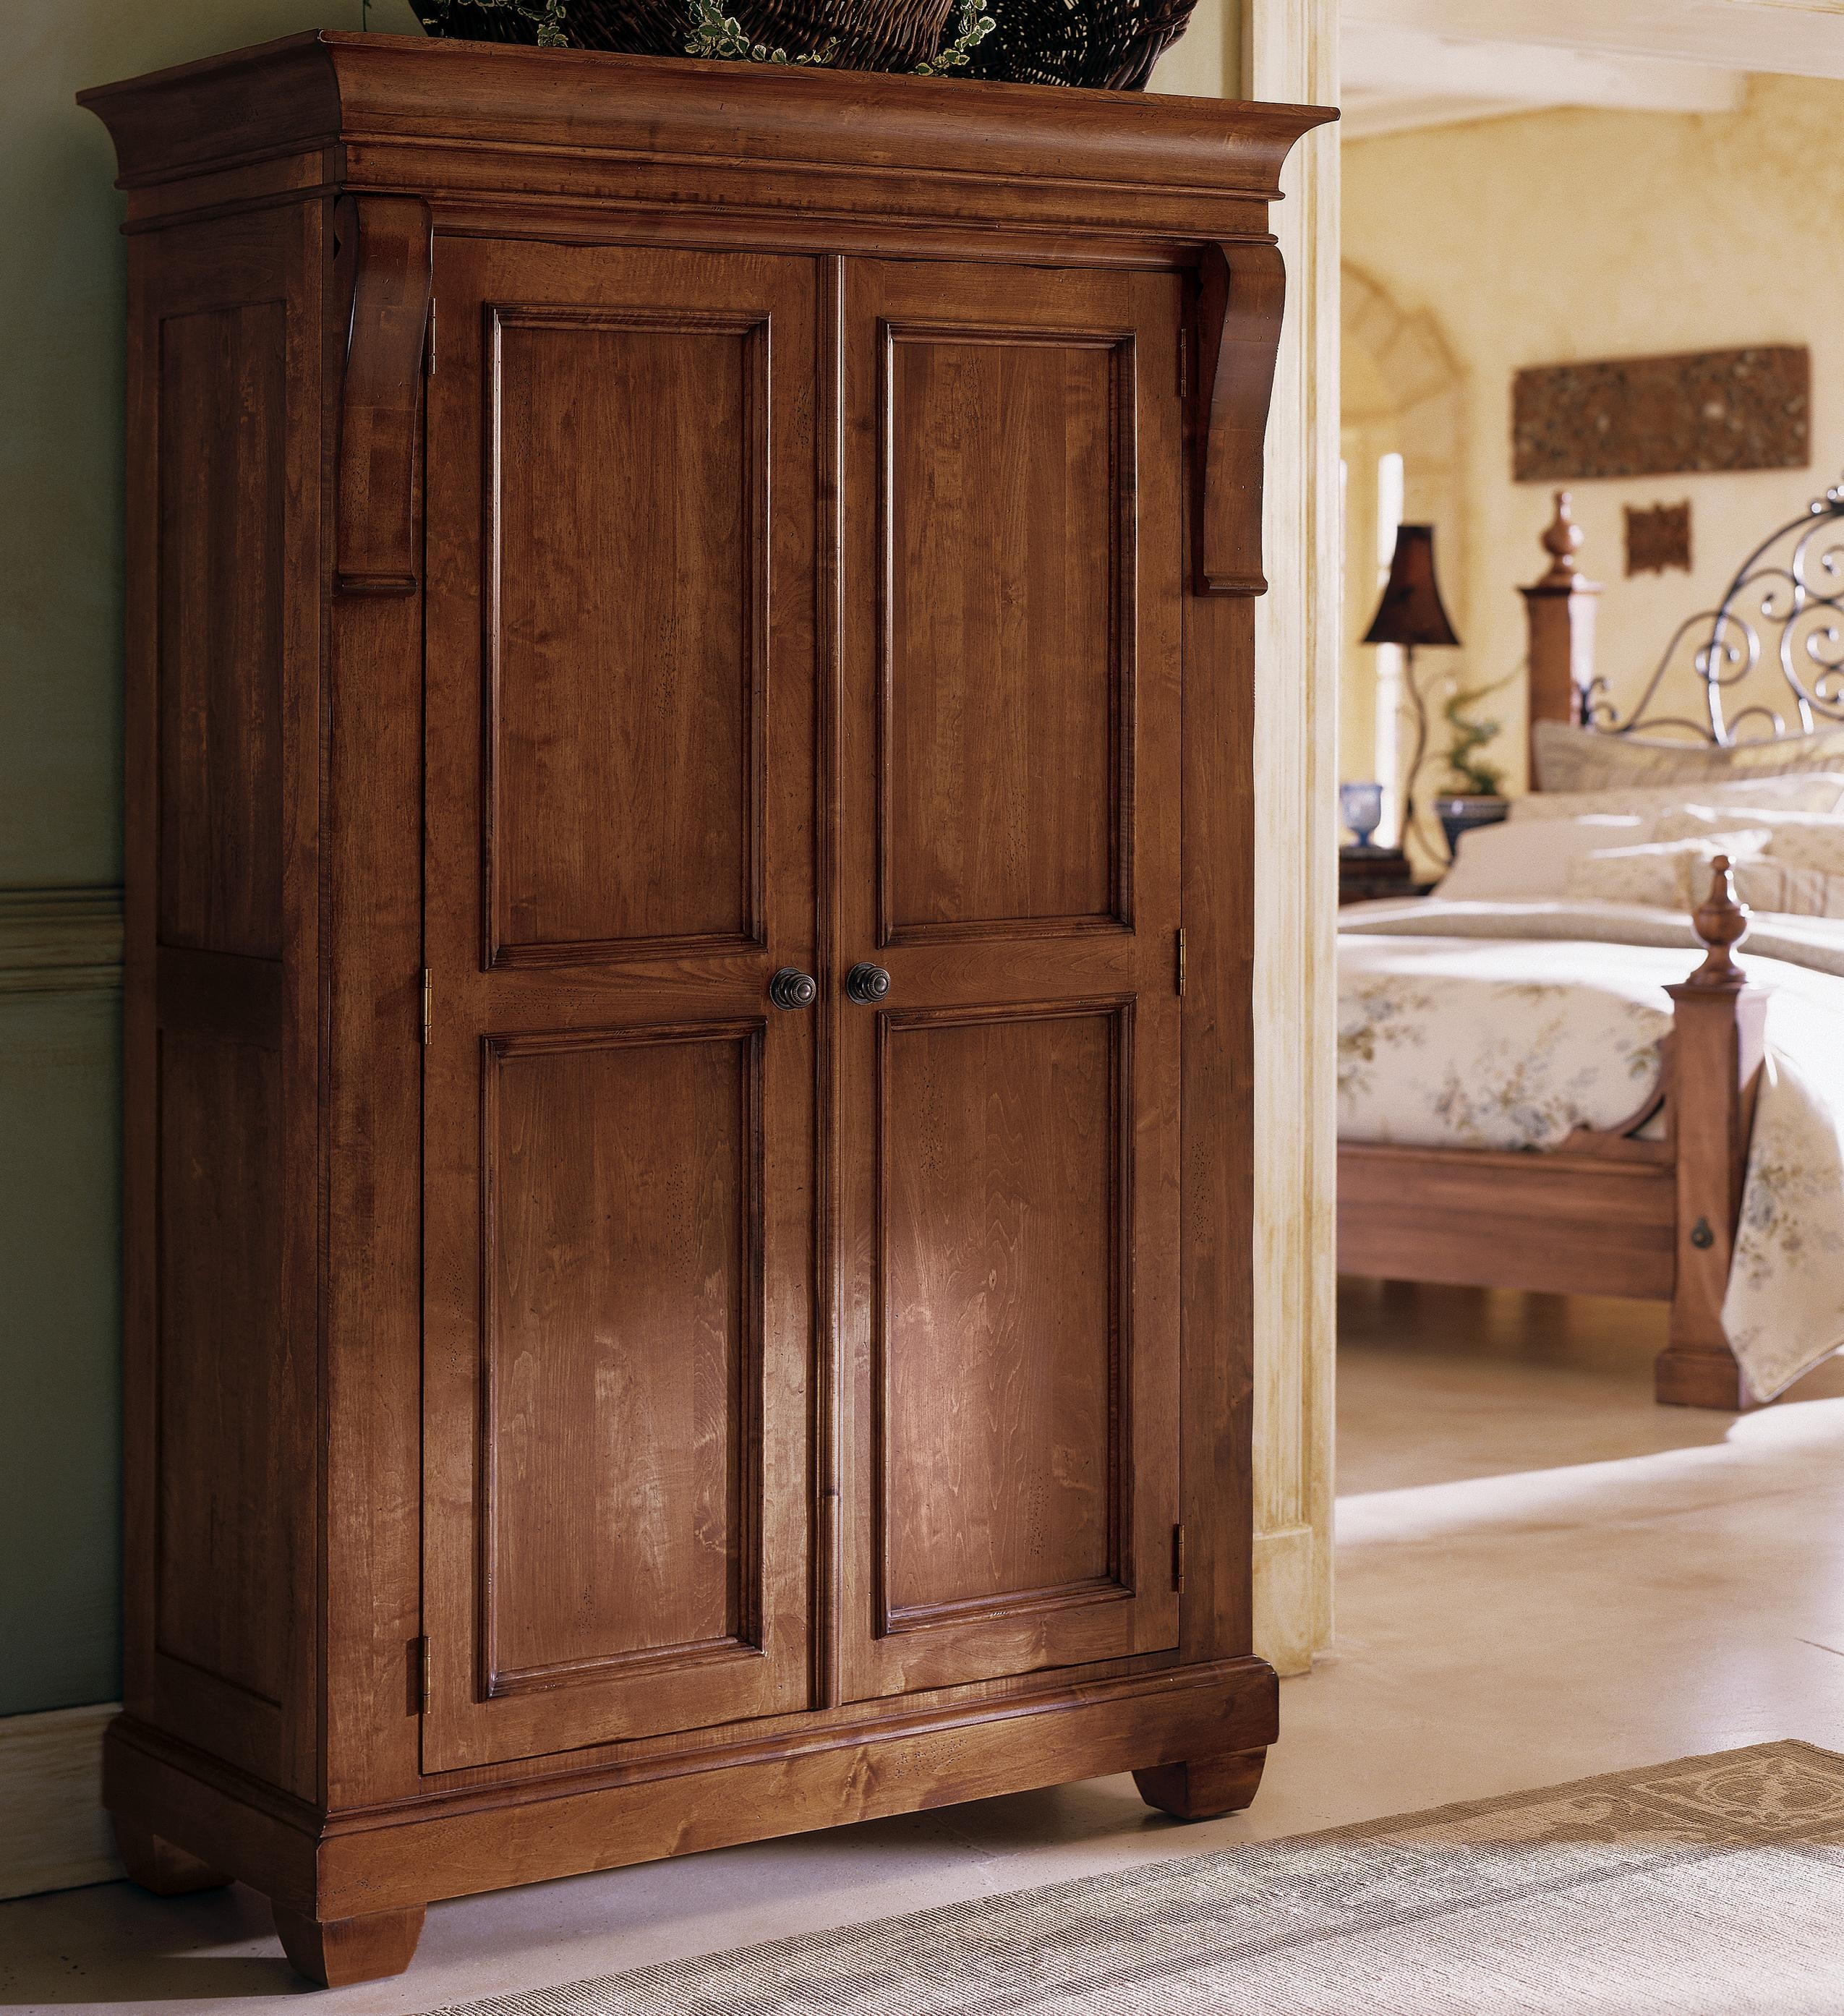 Furniture Fancy Wardrobe Armoire For Wardrobe Organizer Idea Pertaining To Solid Wood Wardrobe Closets (Image 11 of 25)